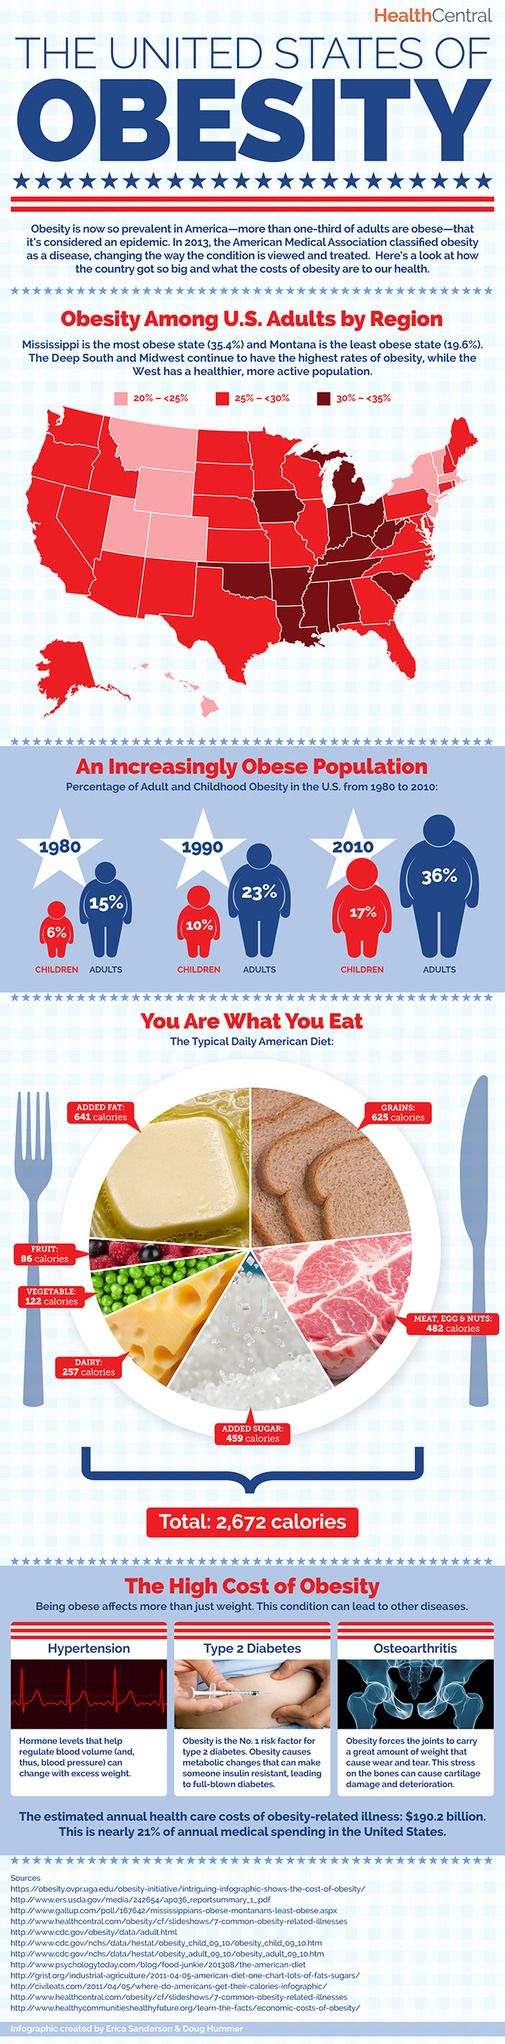 health effects of obesity in america The obesity epidemic is one of the country's most serious health problems adult obesity rates have doubled since 1980, from 15 to 30 percent, while childhood obesity rates have more than tripled.